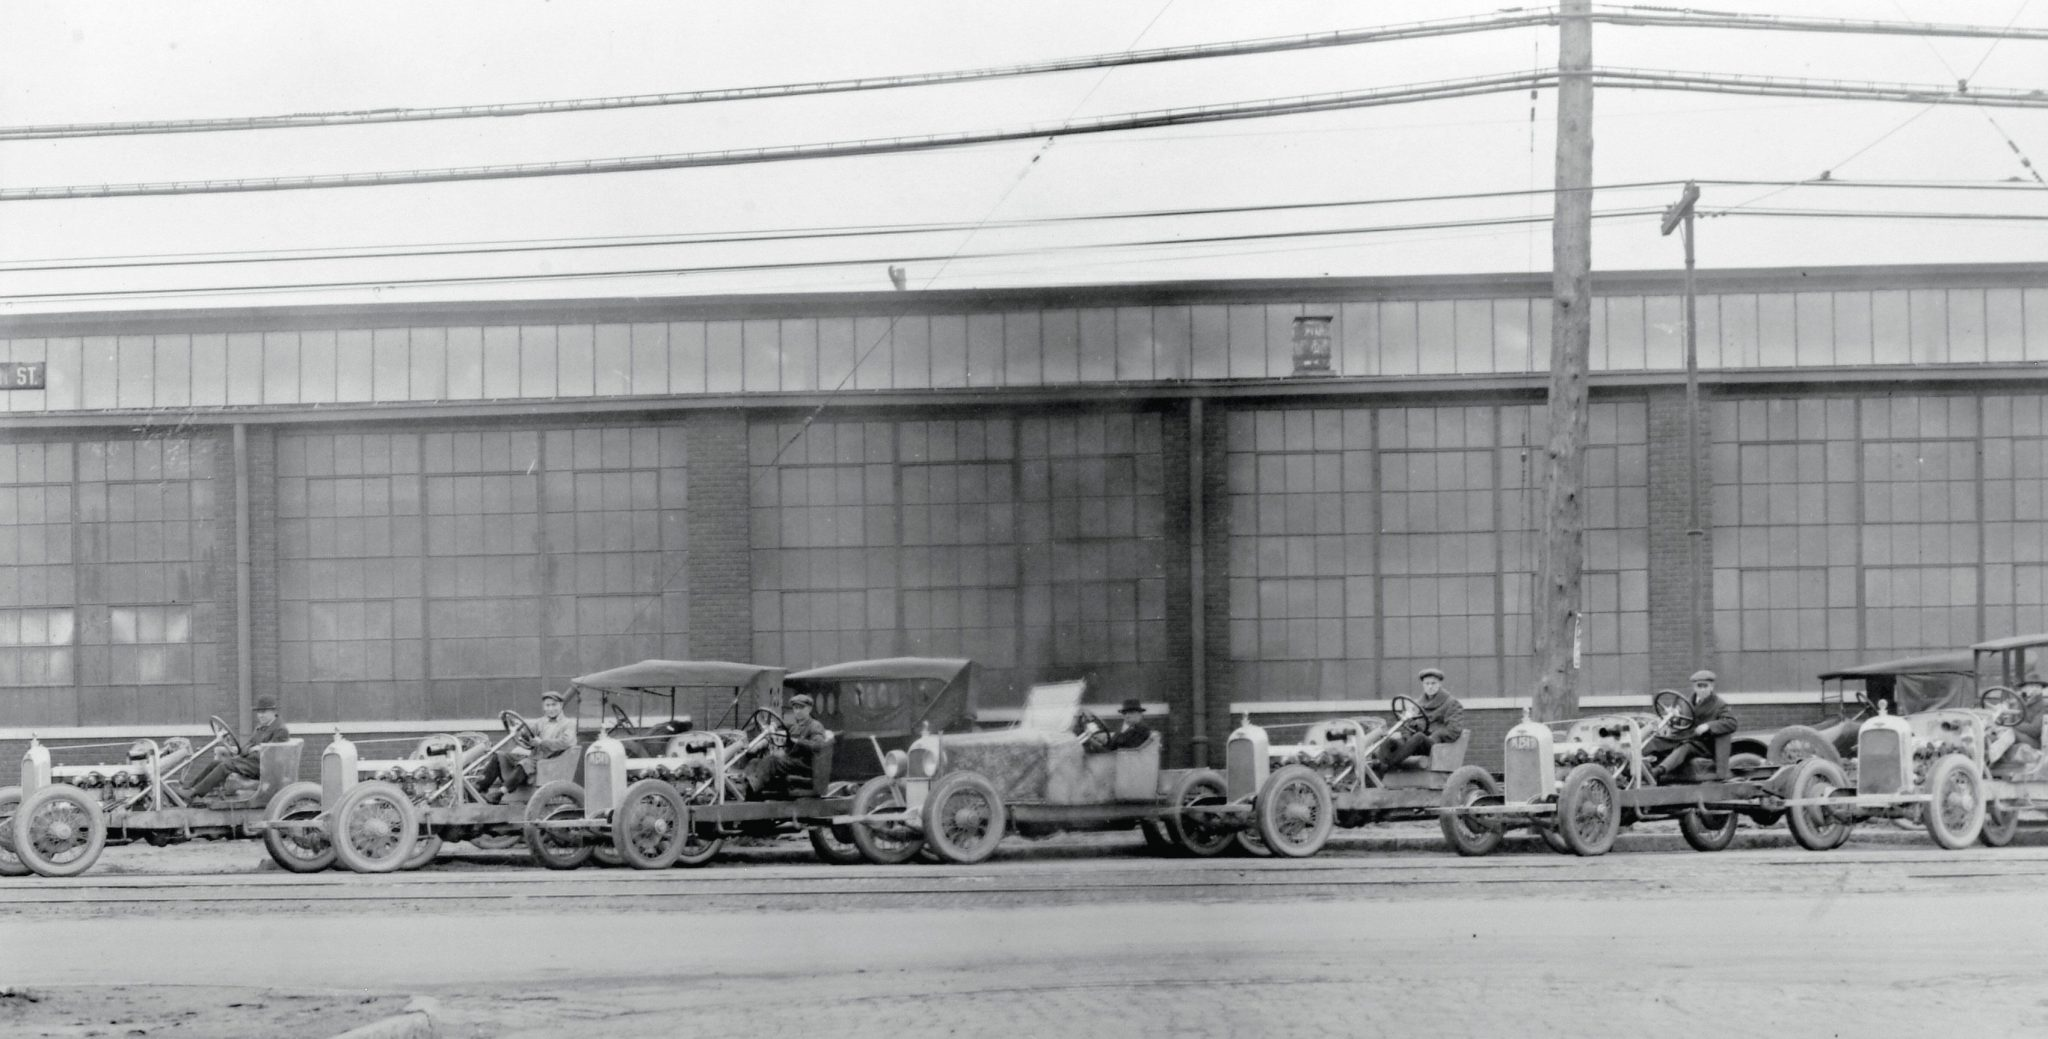 If there were any doubts that Duesenberg was building the Model A in 1921, this photo taken in front of the factory hopefully assuaged any of the stockholder's fears. Of course, it was only a front; production was well below expectations by 1922 and Fred Duesenberg was continually improving upon the cars. More than 1,000 cars should have been built by the end of 1922, but production totals were around 150.